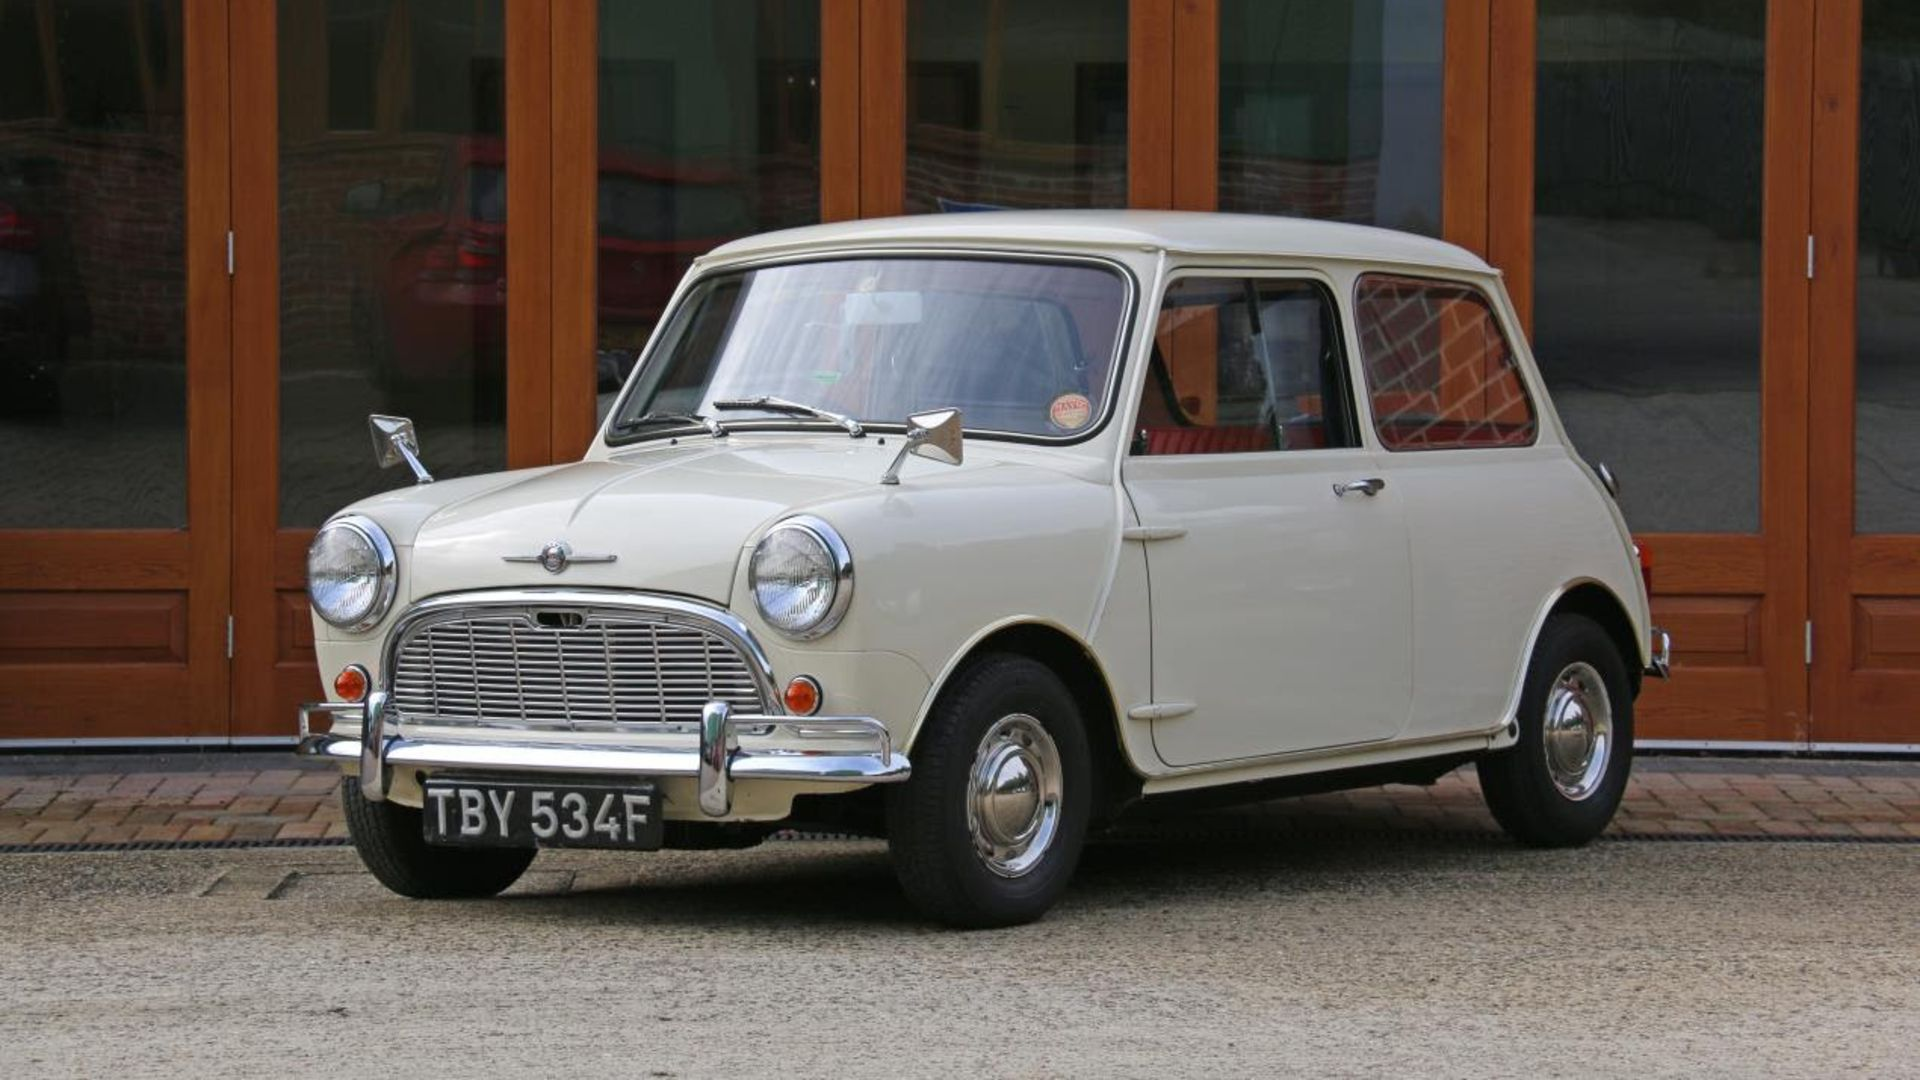 'World's most original Mini' is up for sale